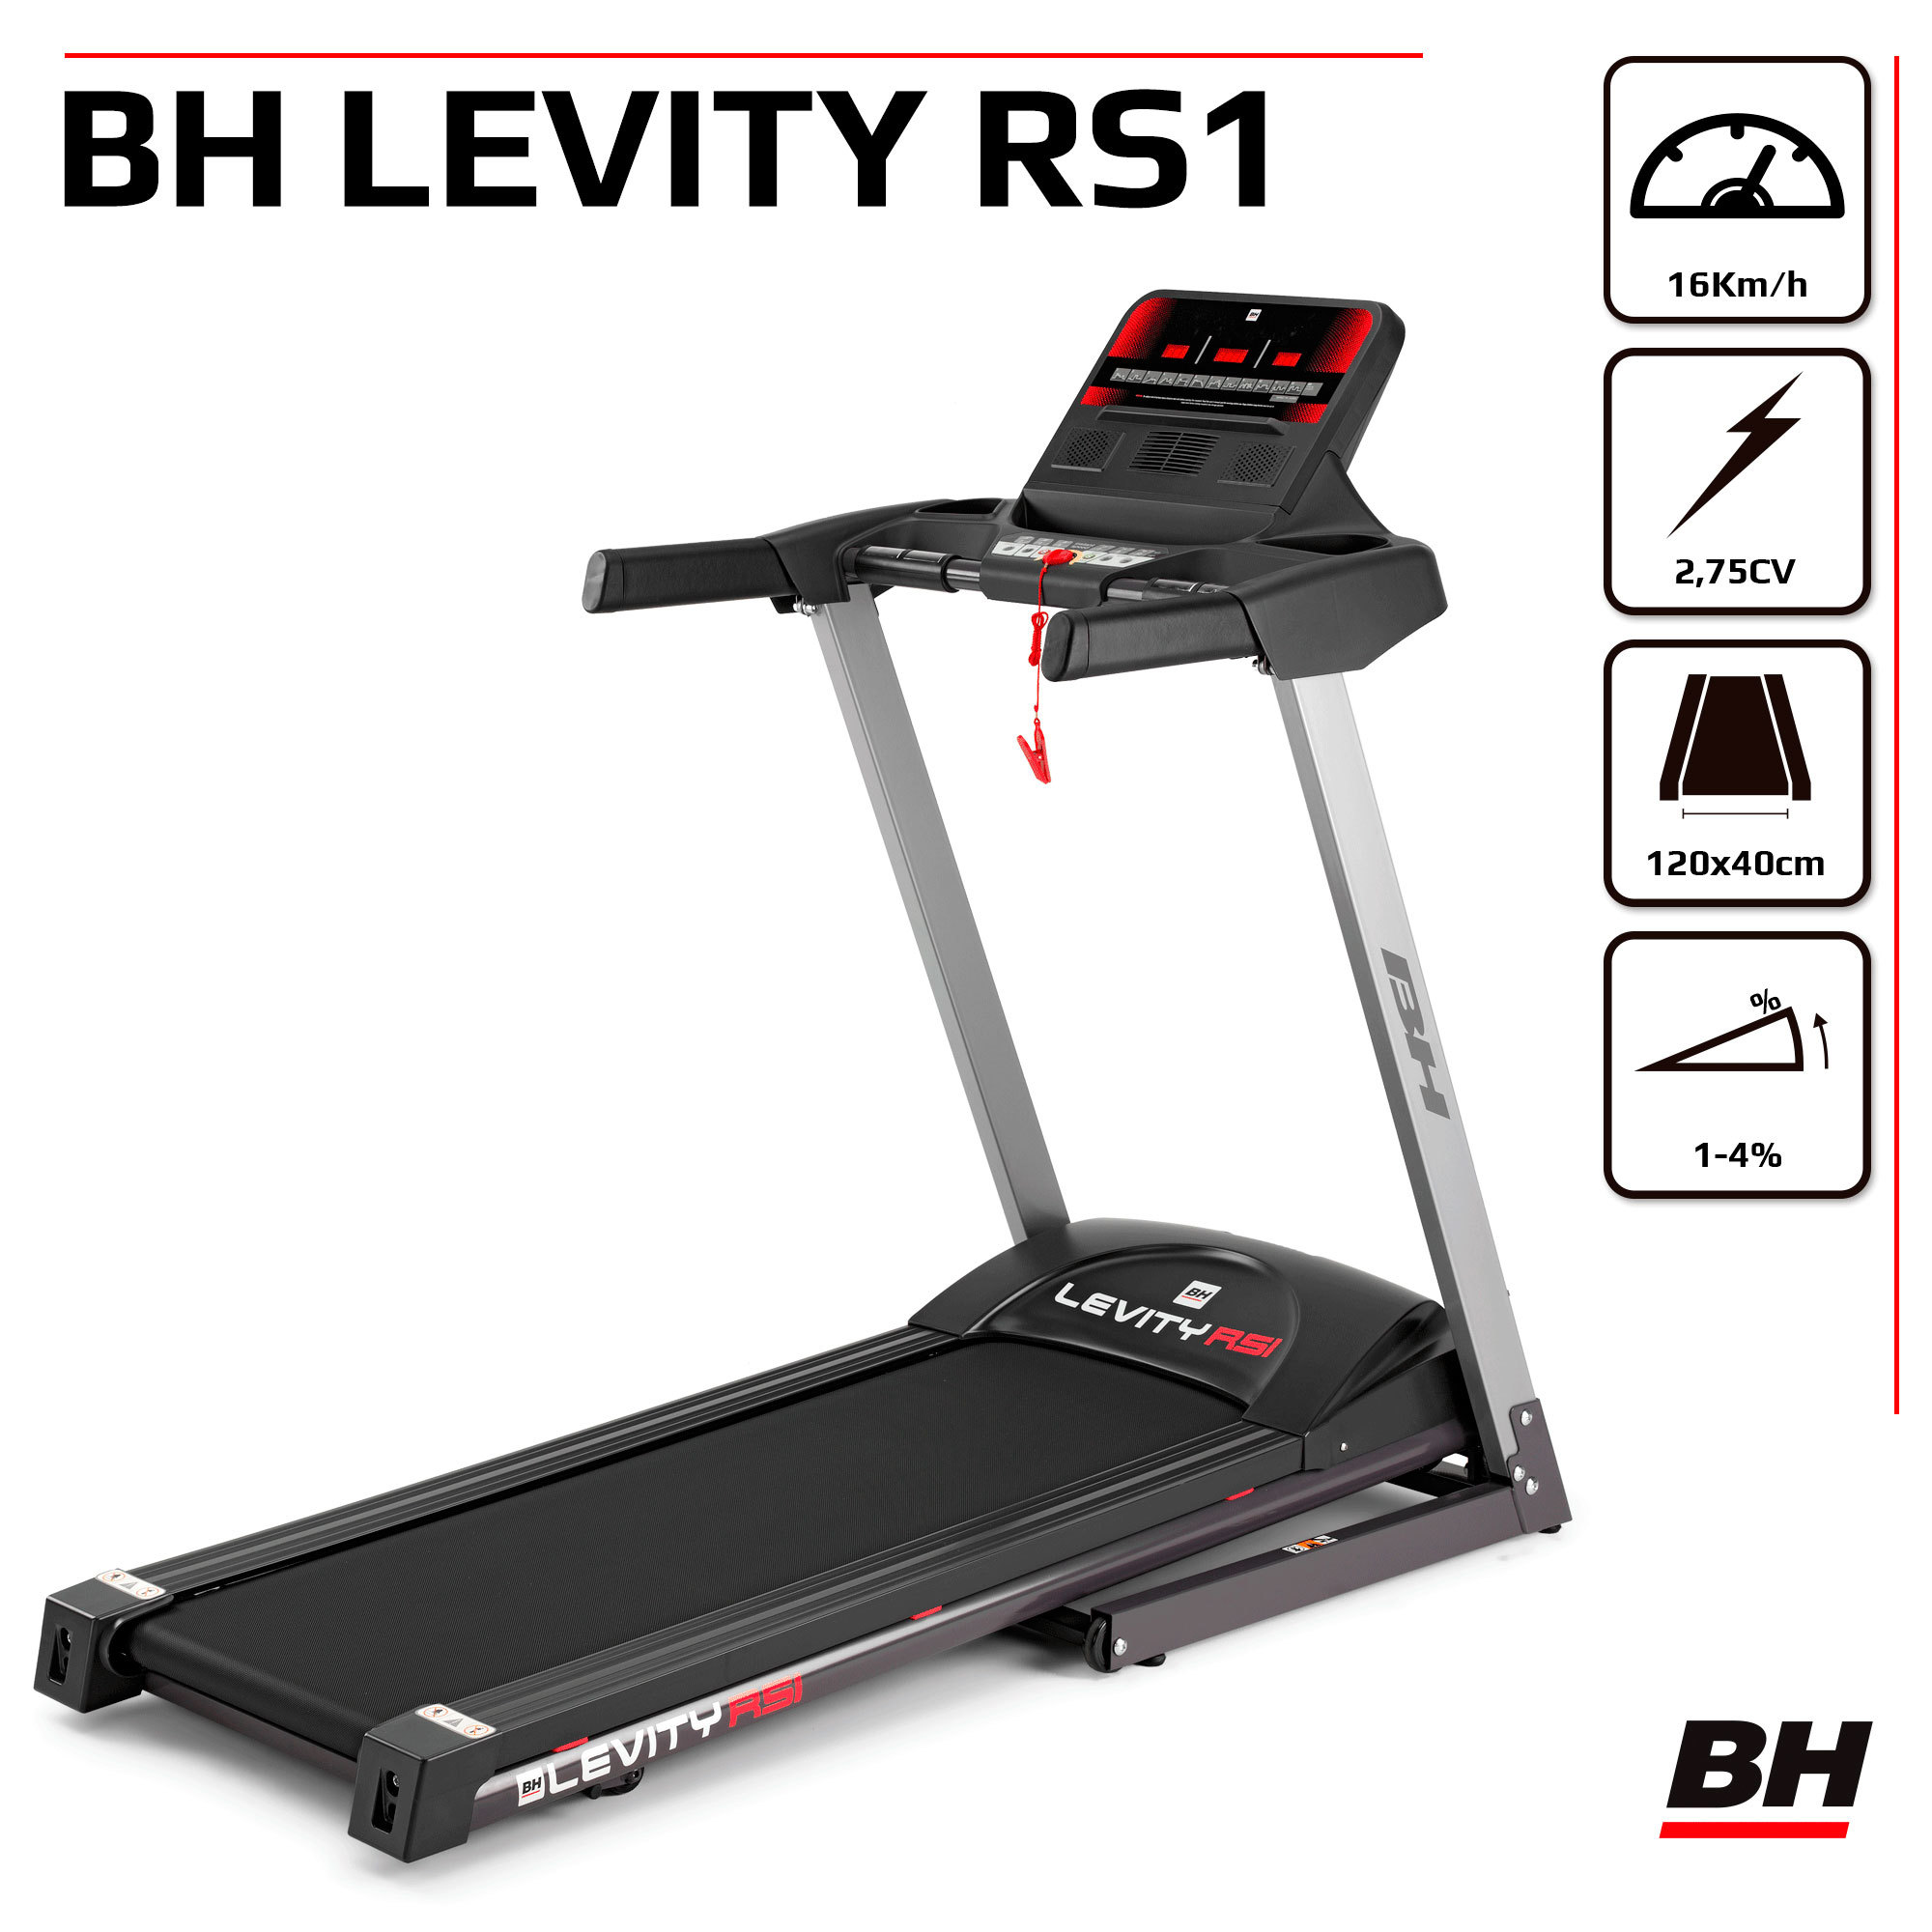 Tapis de Course 16km/h. Inclinaison manuelle. Levity Rs1 G6140RF